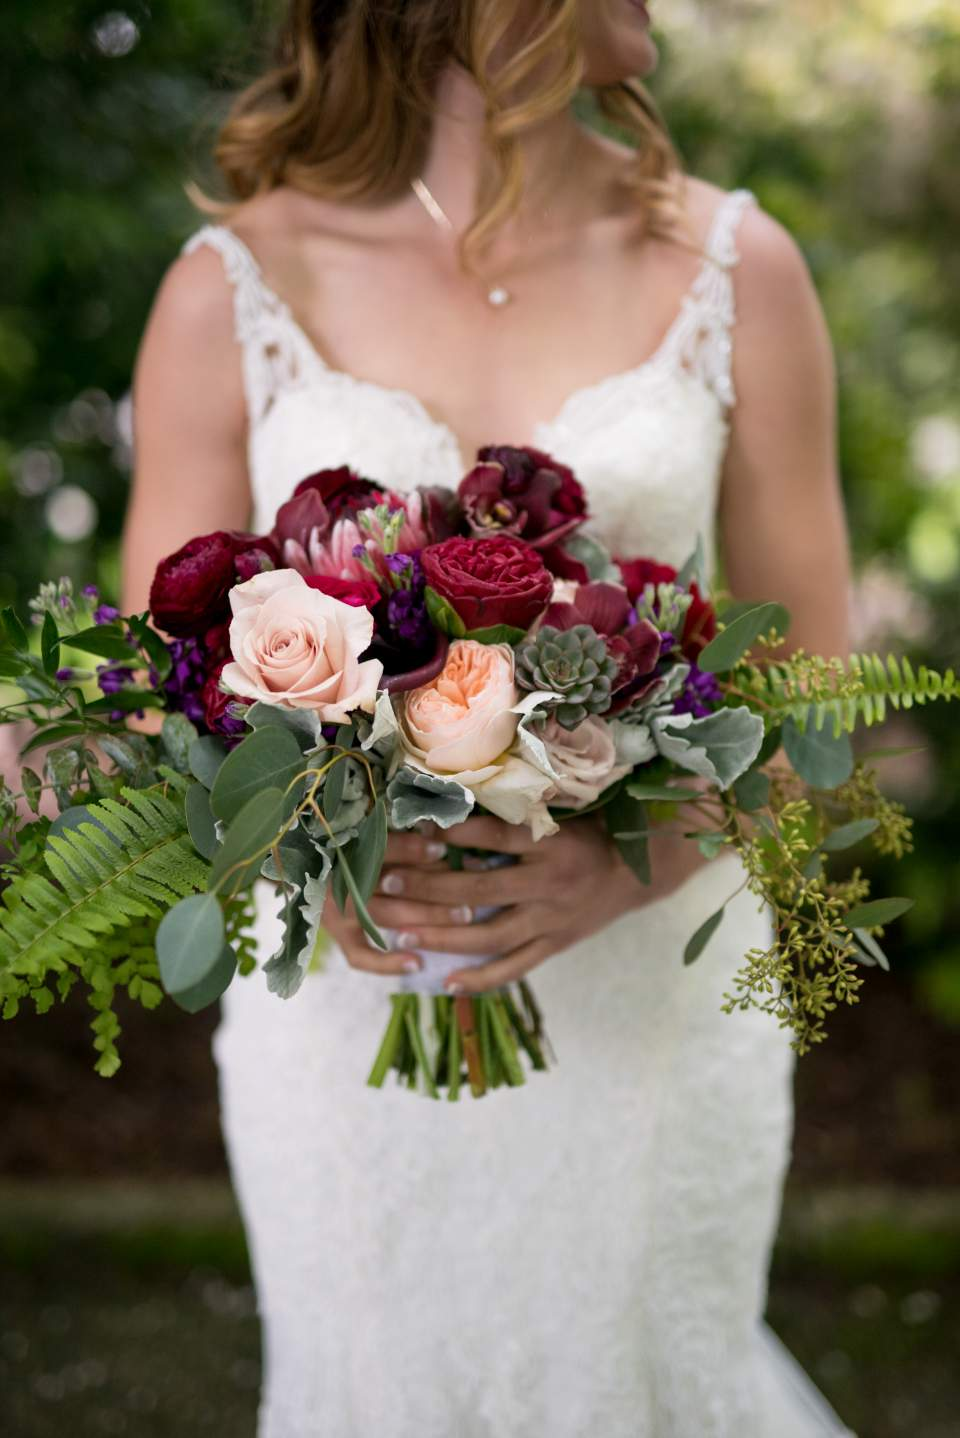 boho bride with lace dress and bridal bouquet